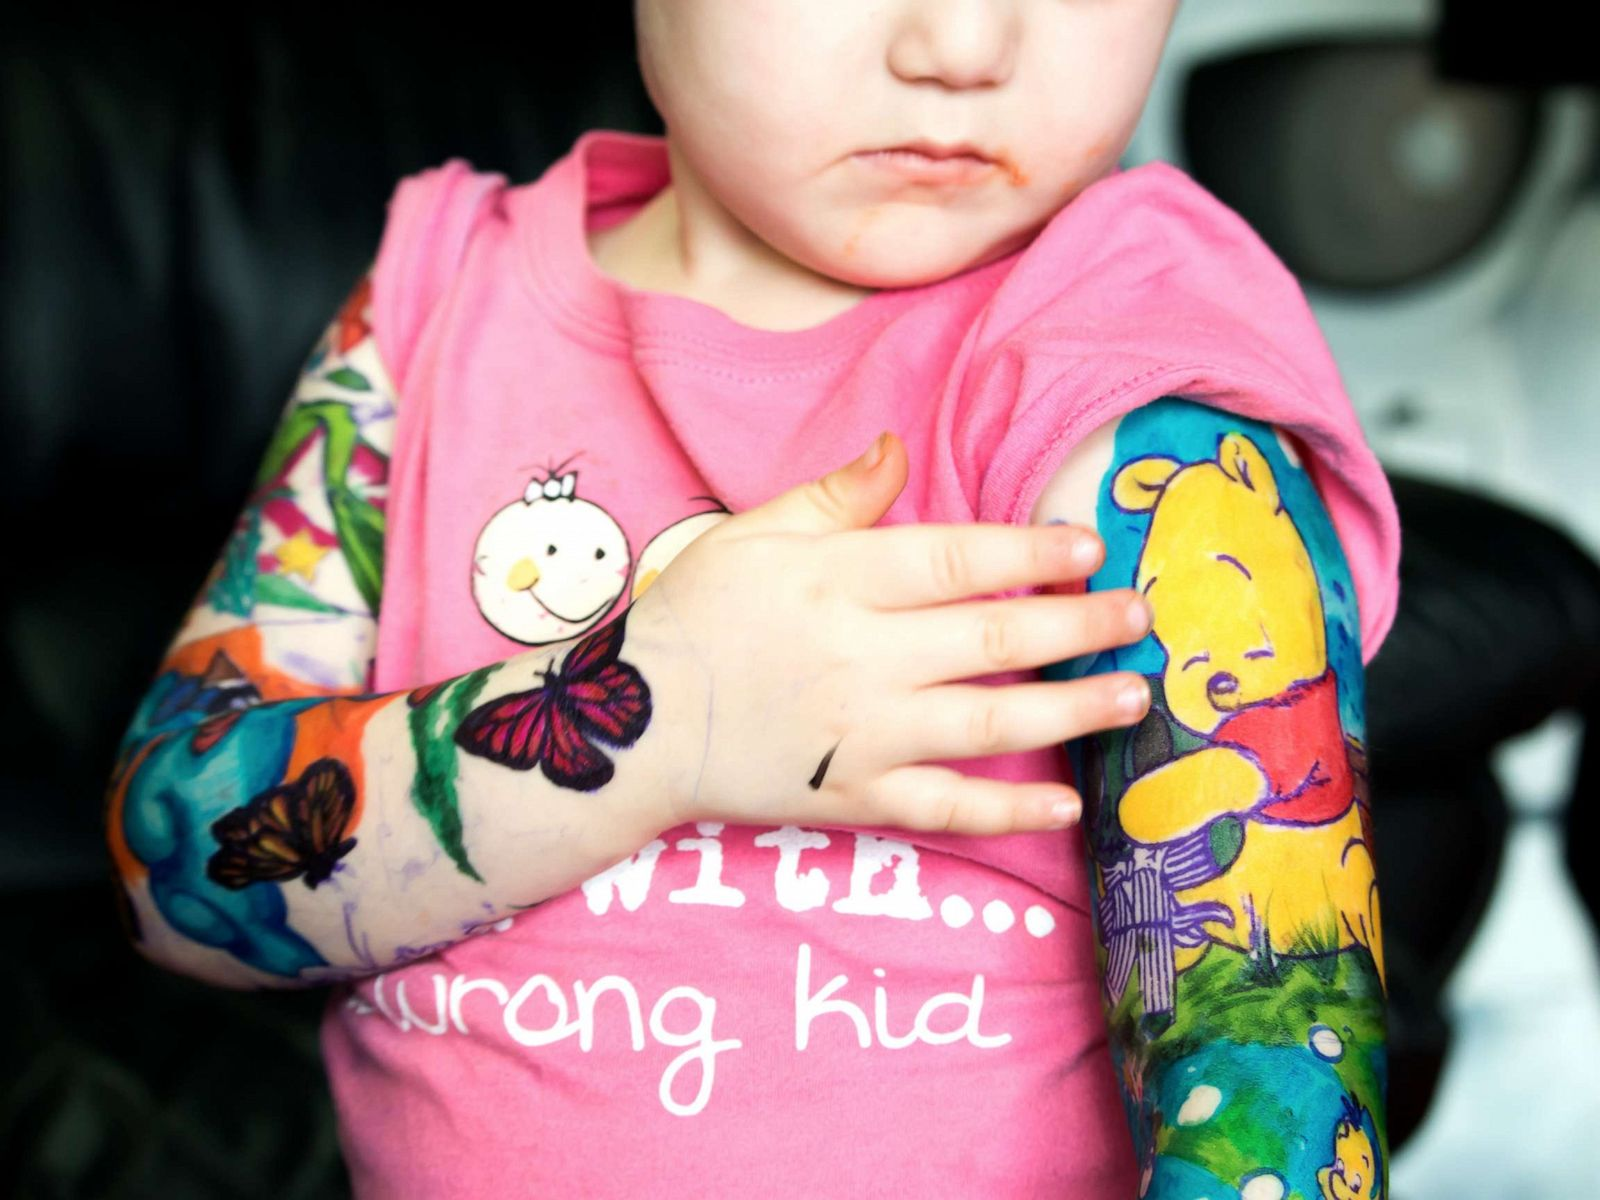 3 Year Old Fighting Cancer Gets Magical Disney Tattoos To Be Just